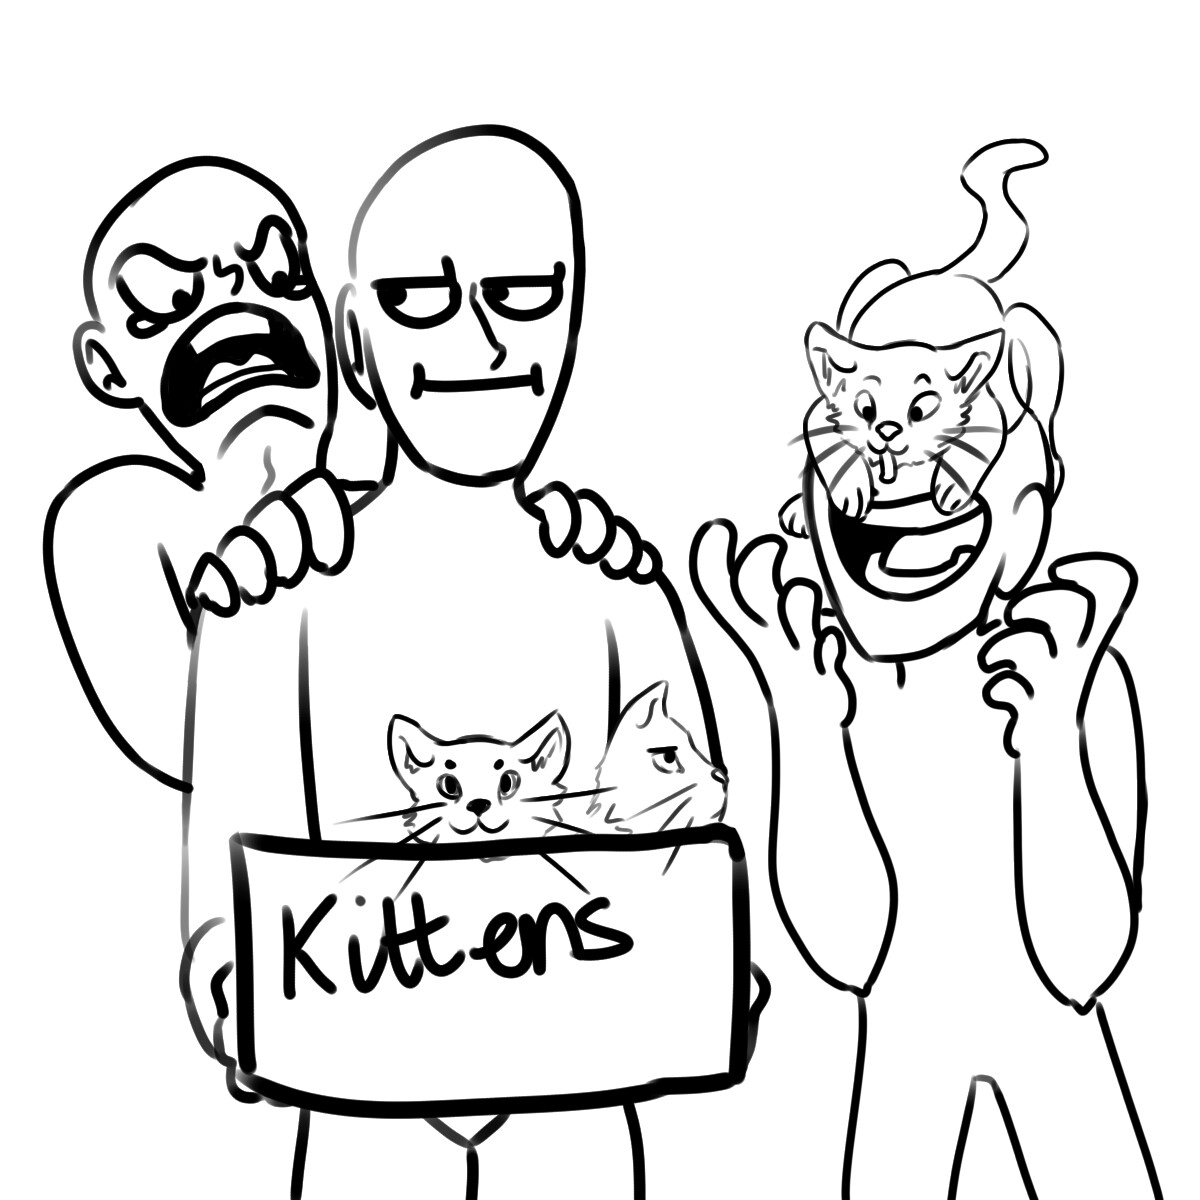 1200x1200 Me Shouting For The Kittens, Dirk With A Kitten On His Face,